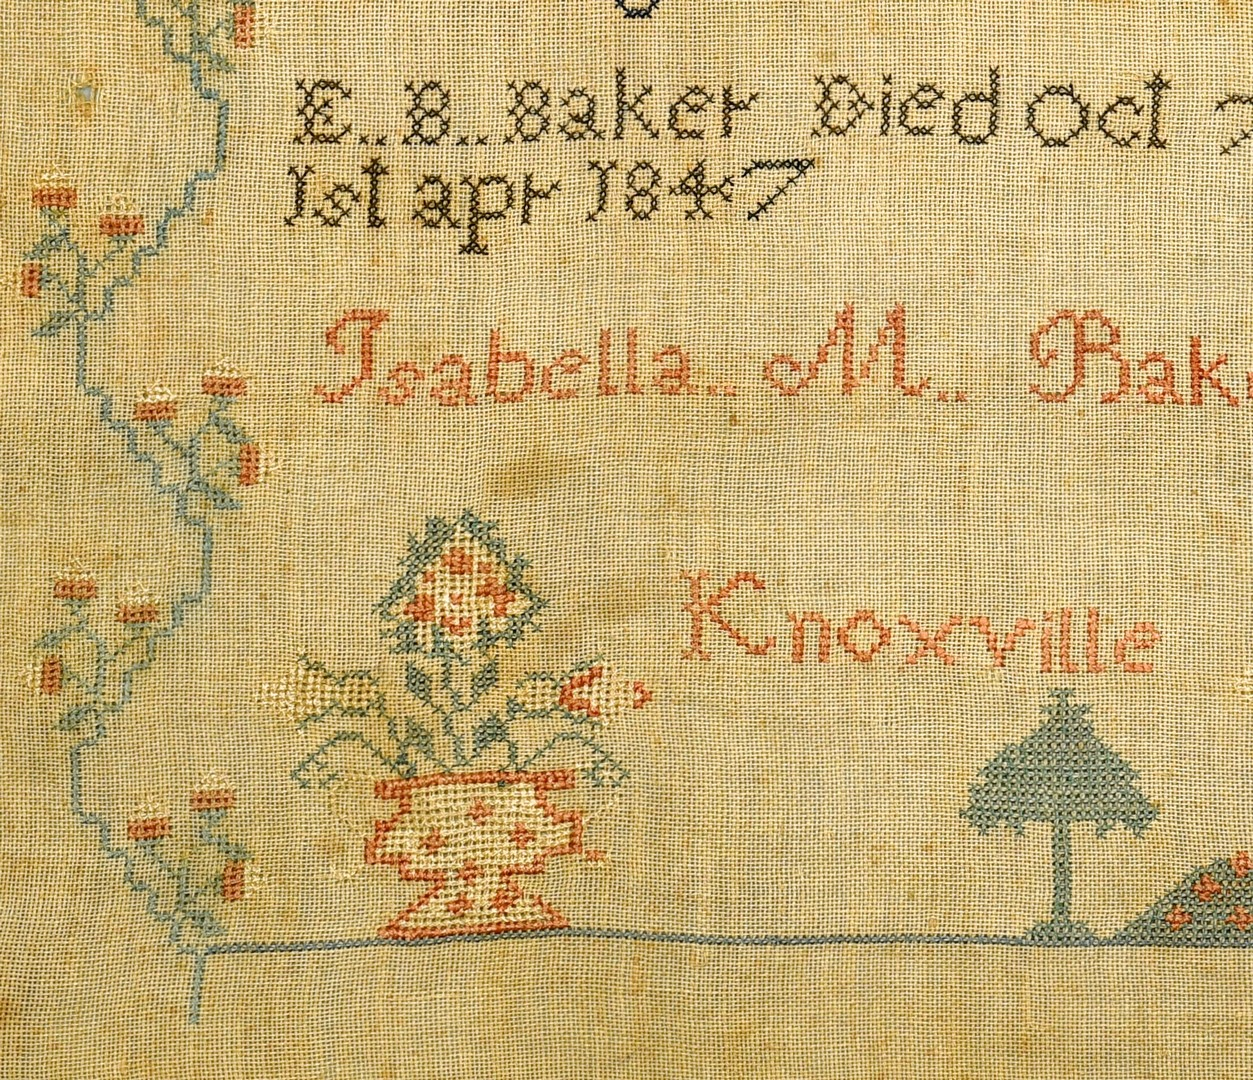 Lot 264: Knoxville, TN Sampler, I. Baker, 1848